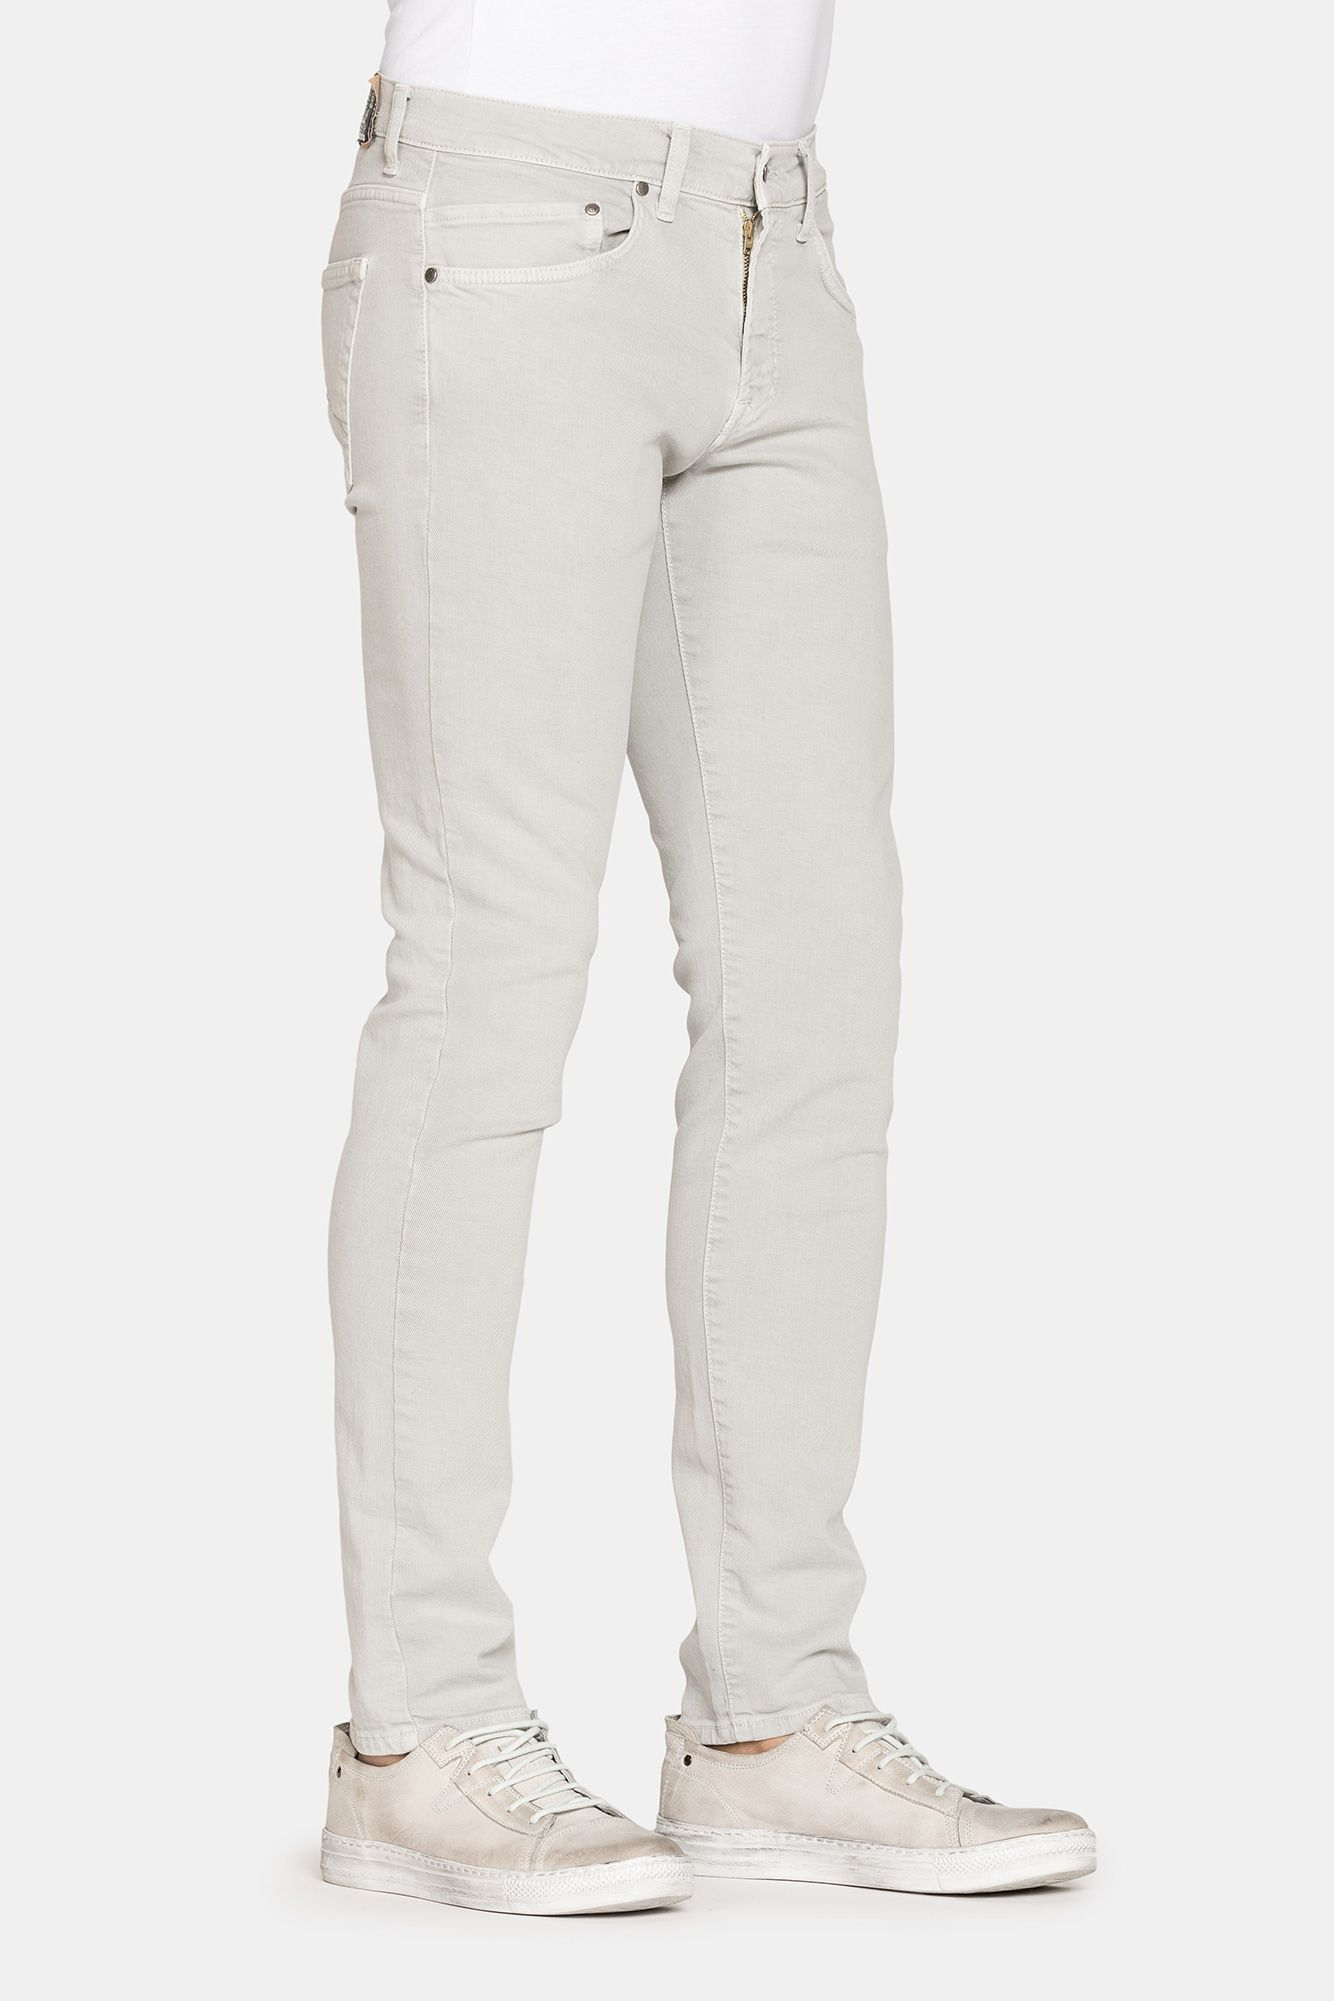 Carrera Jeans Jeans colorato super stretch mod. 717. vita